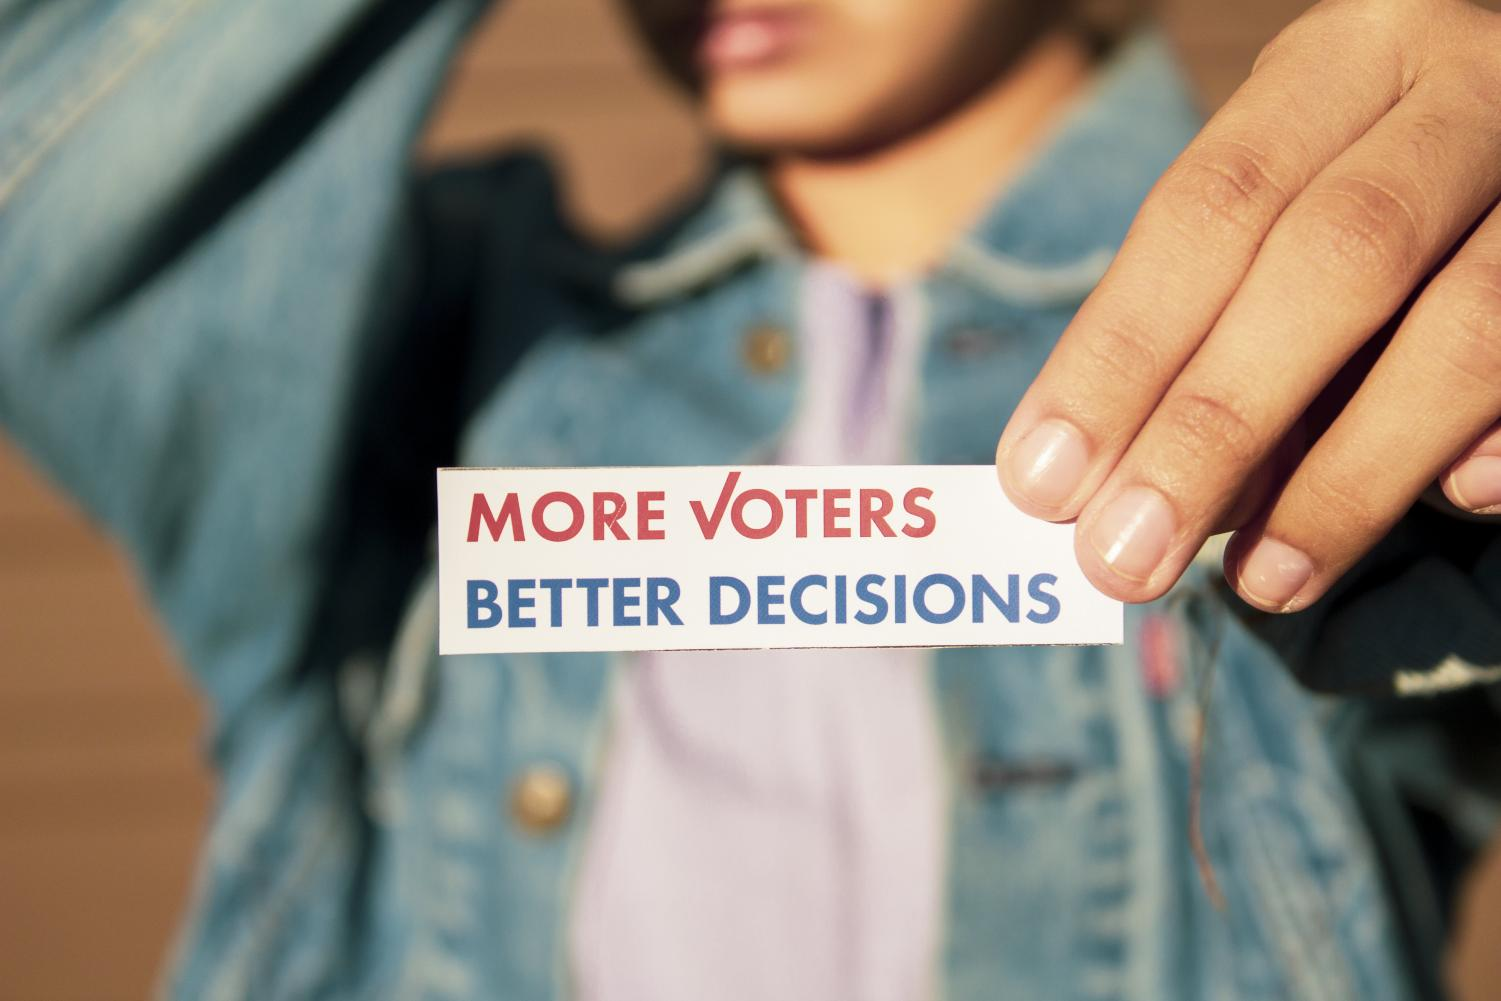 As the midterm election approaches, voting becomes more important.